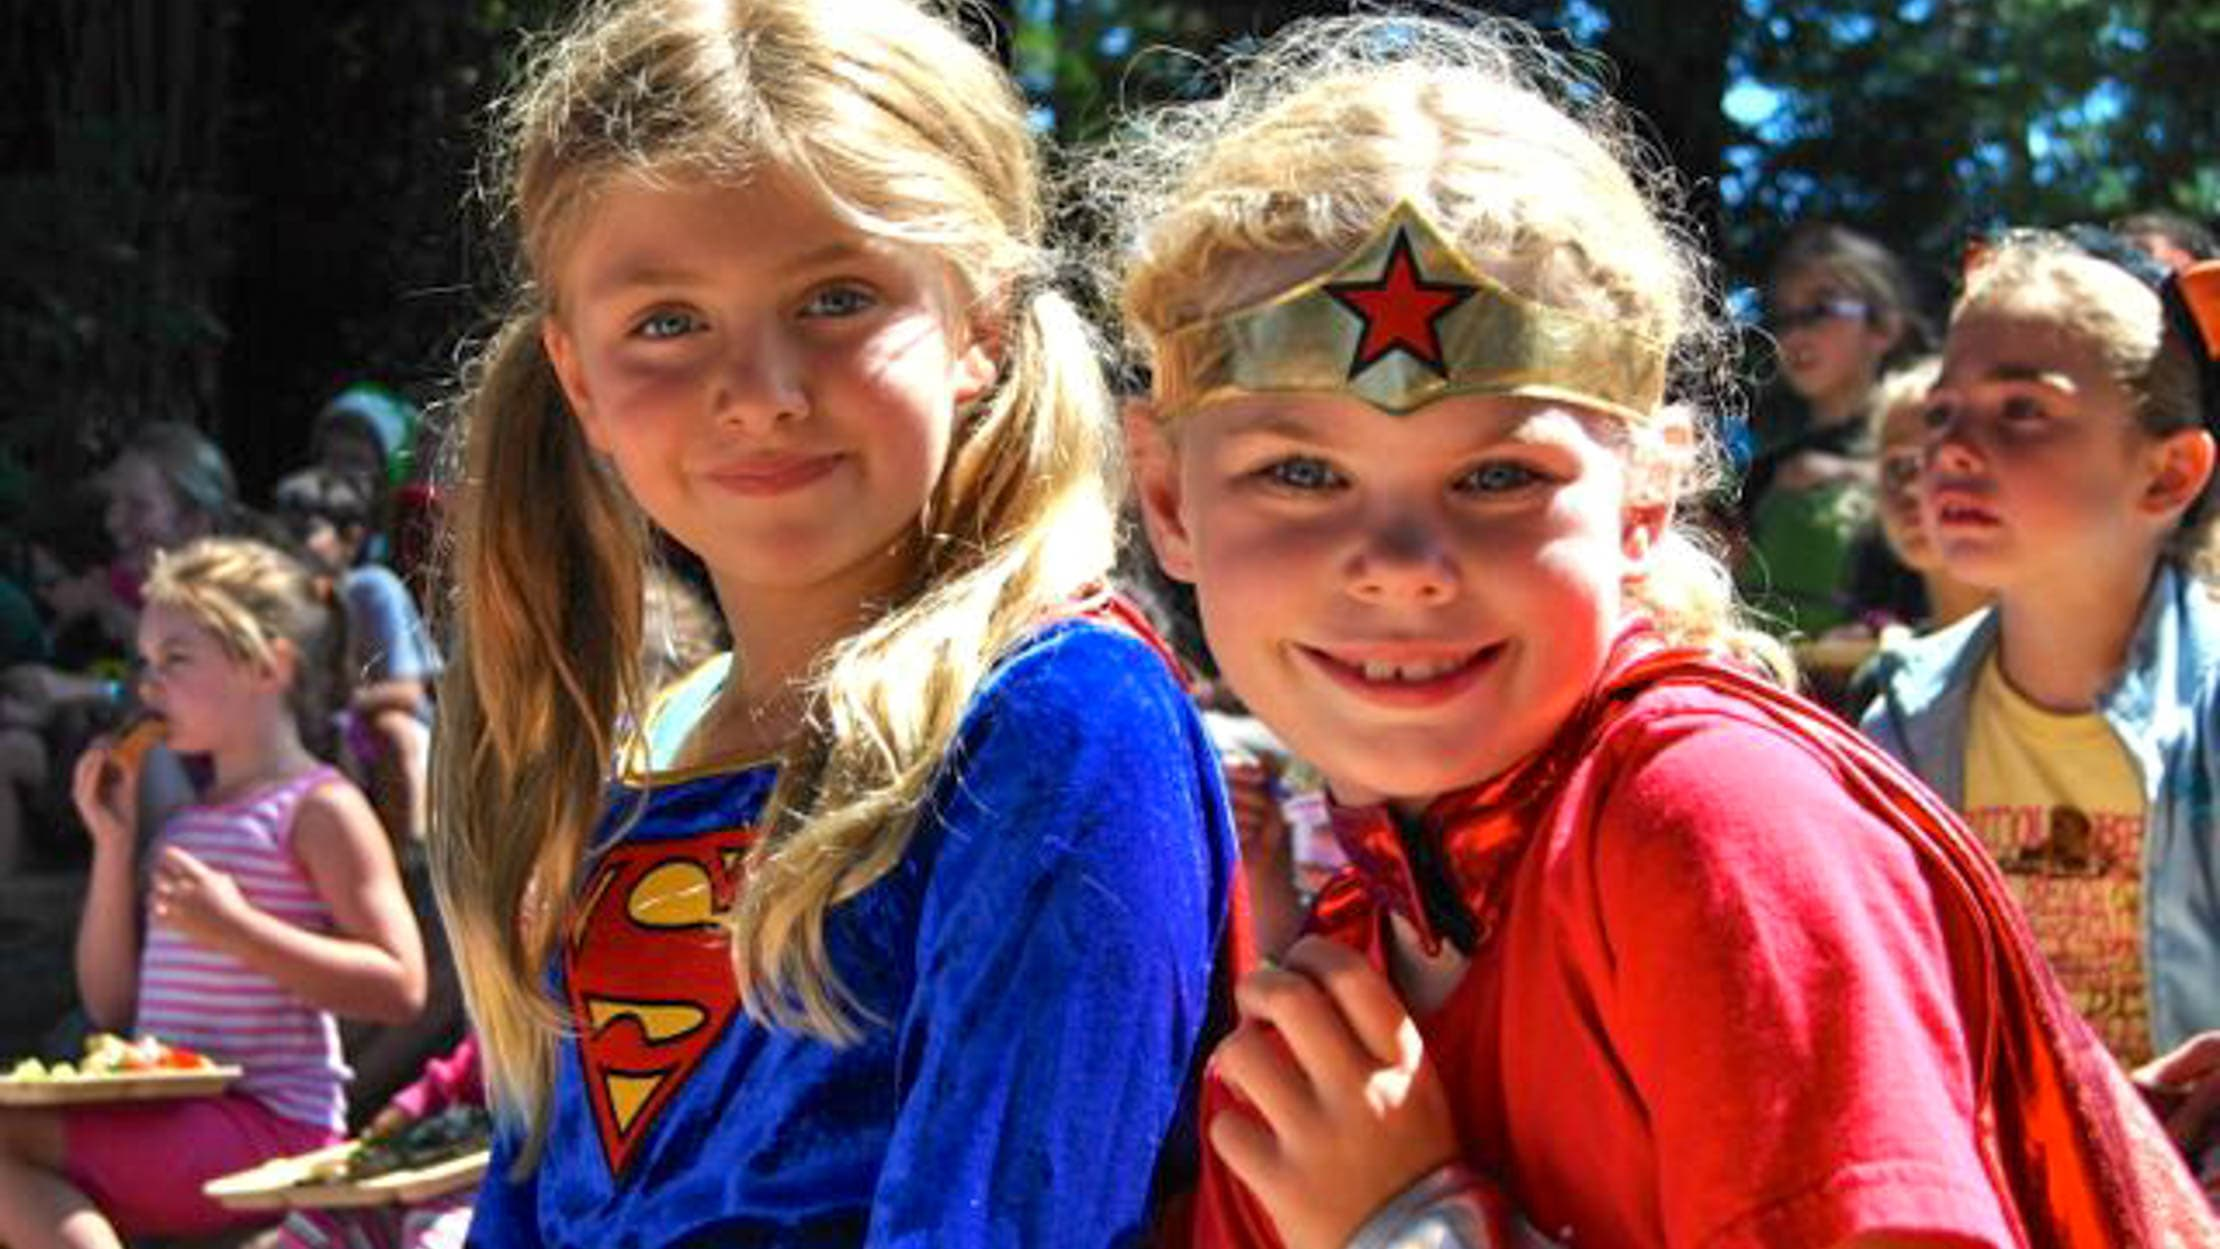 Girls dressed as Supergirl and Wonder Woman for Friday Funday